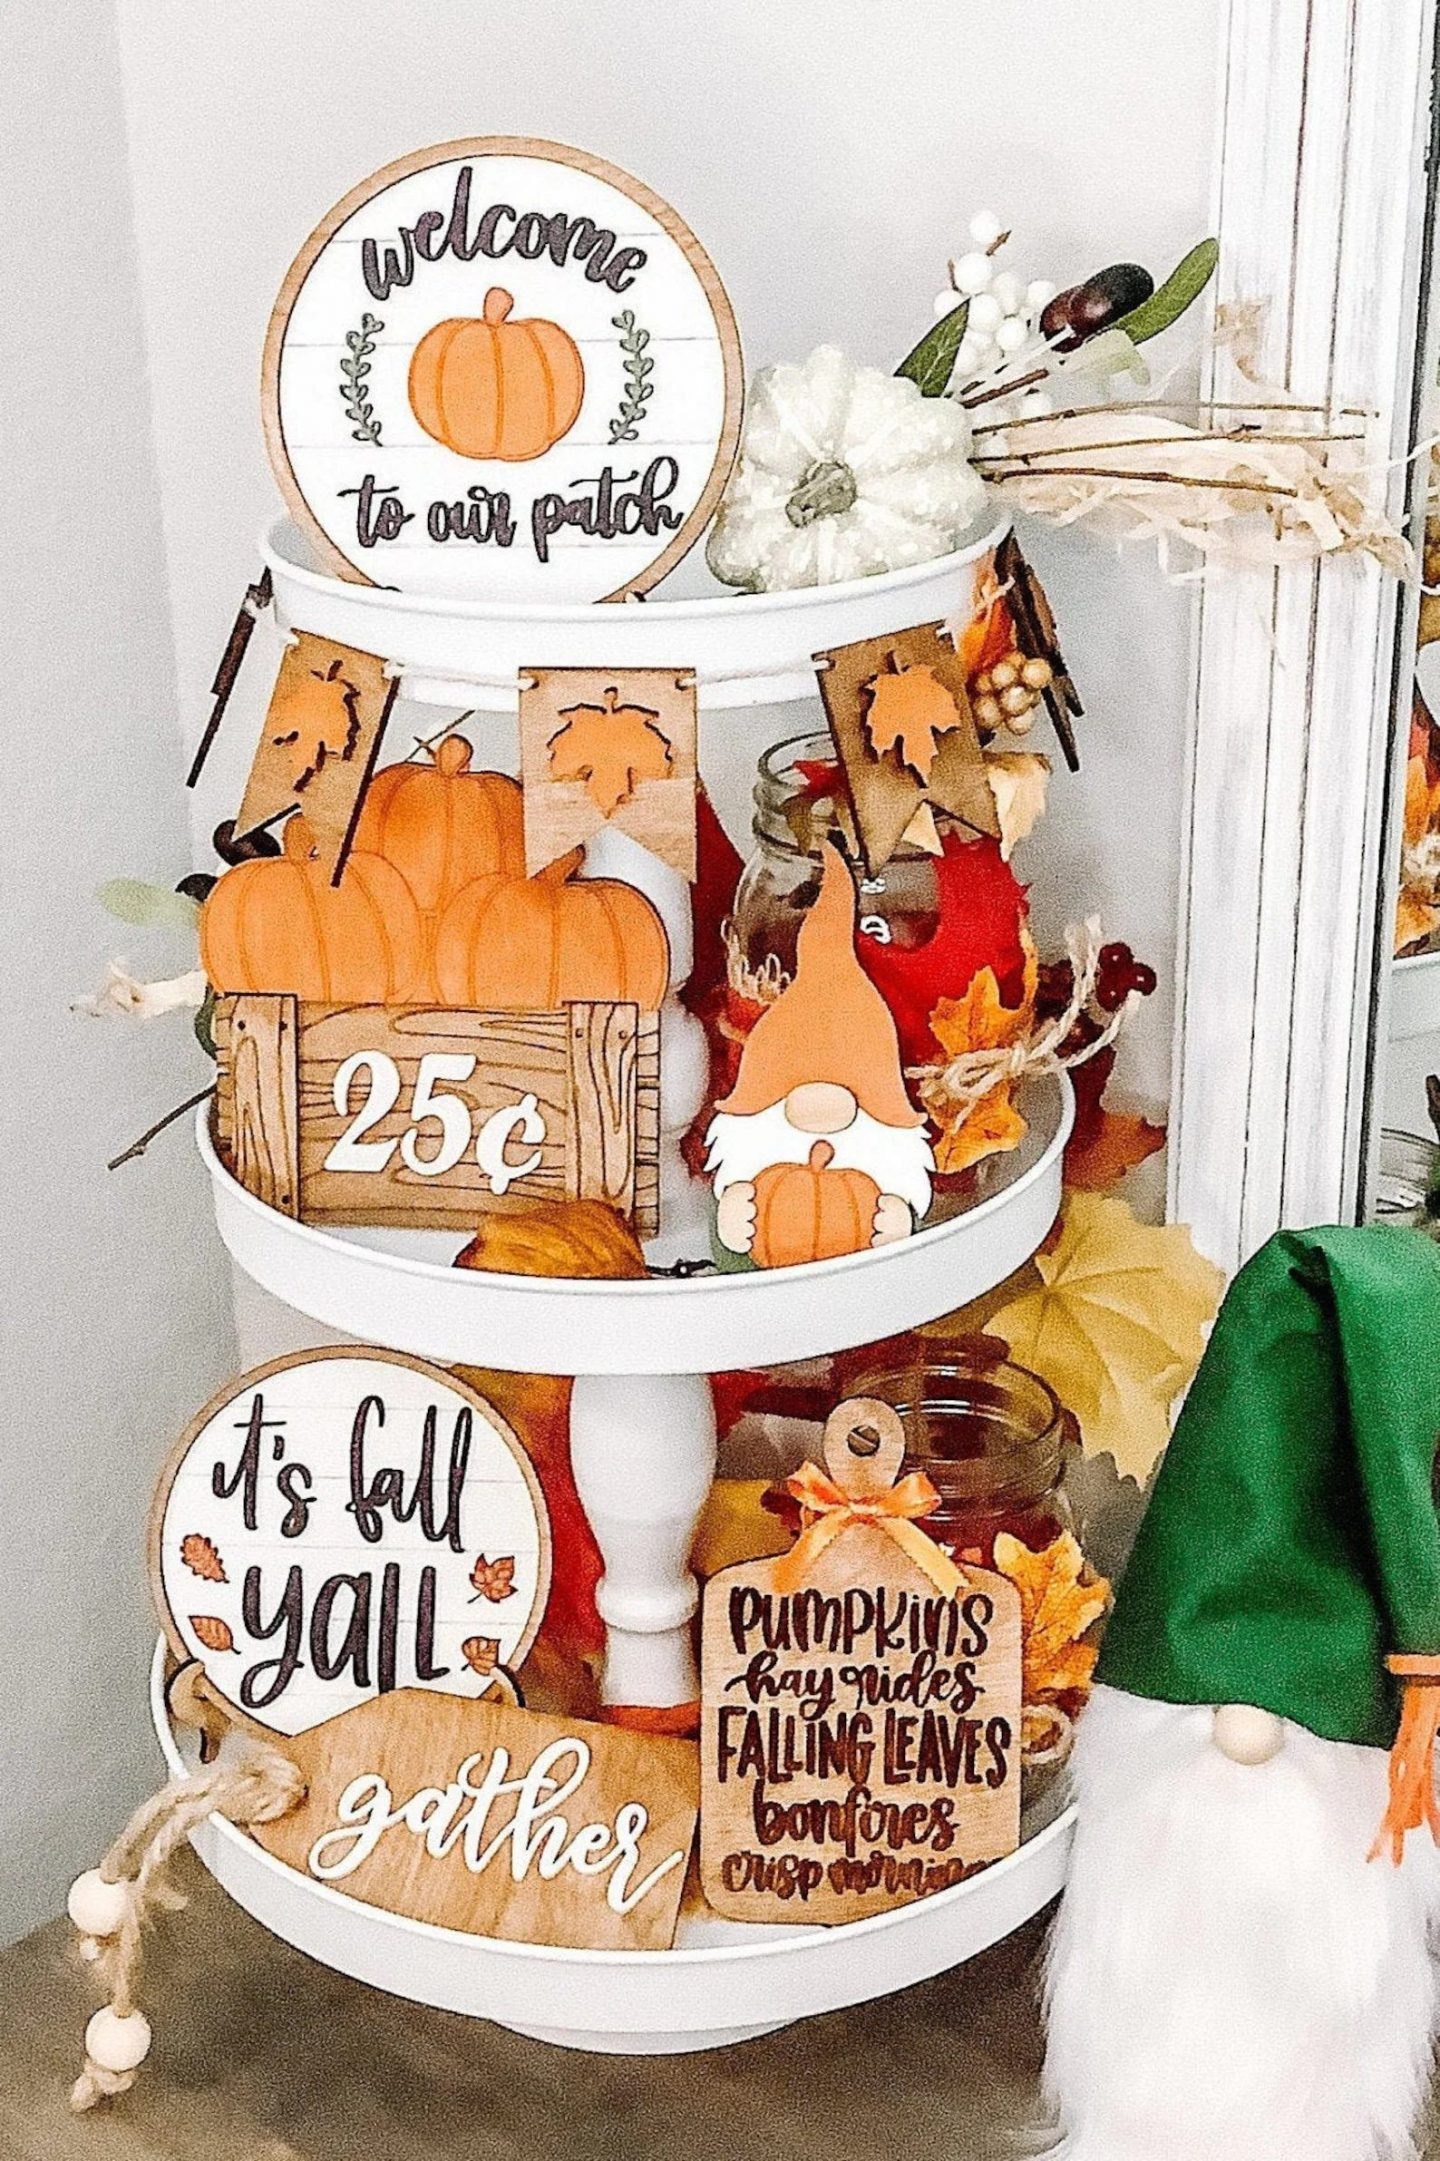 Tiered Tray Harvest Decor with pumpkins and gnomes